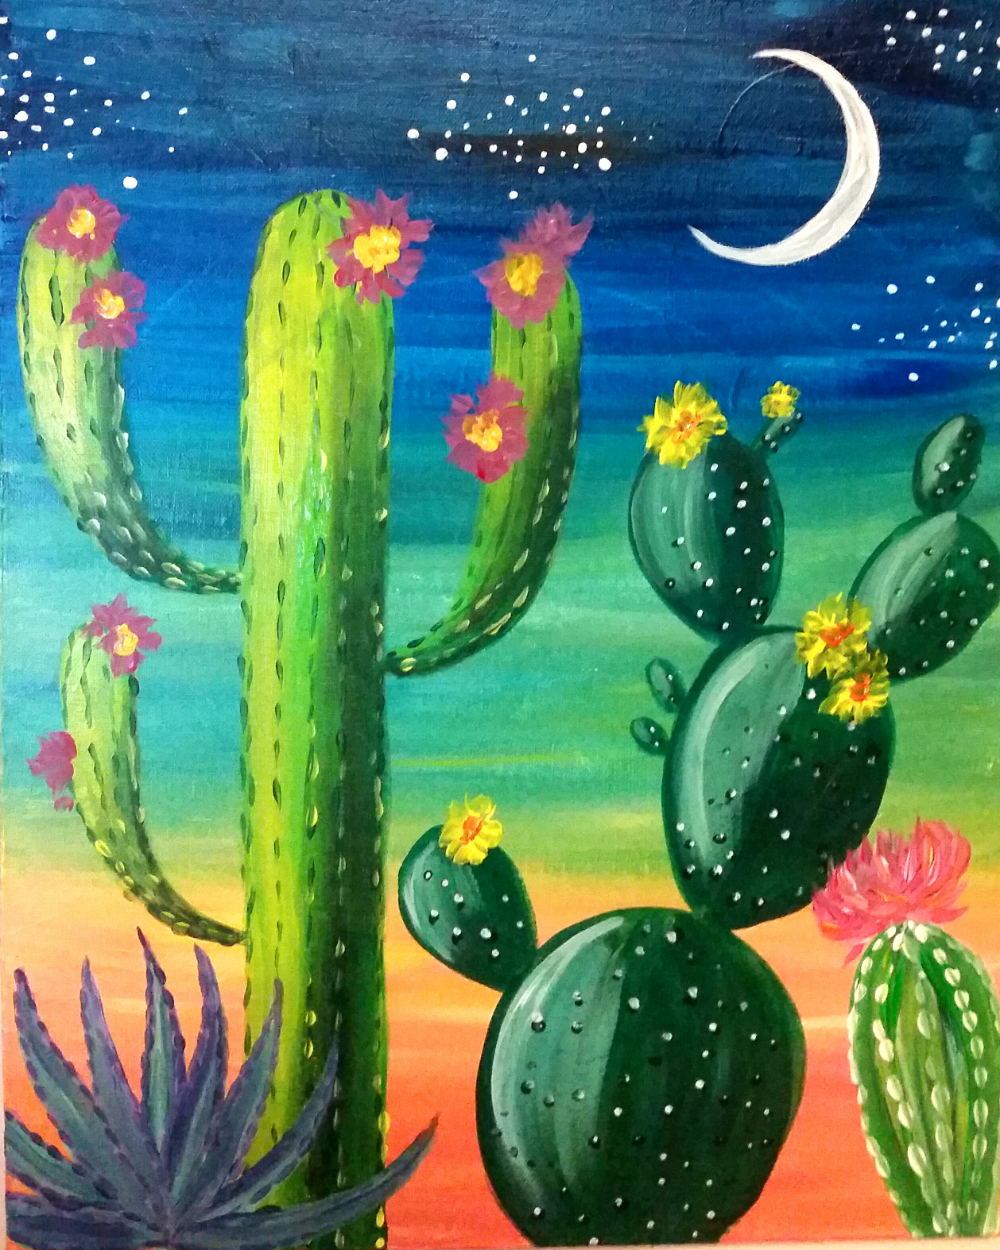 Colorful Cactus Sunset Friday Sept 9 7pm